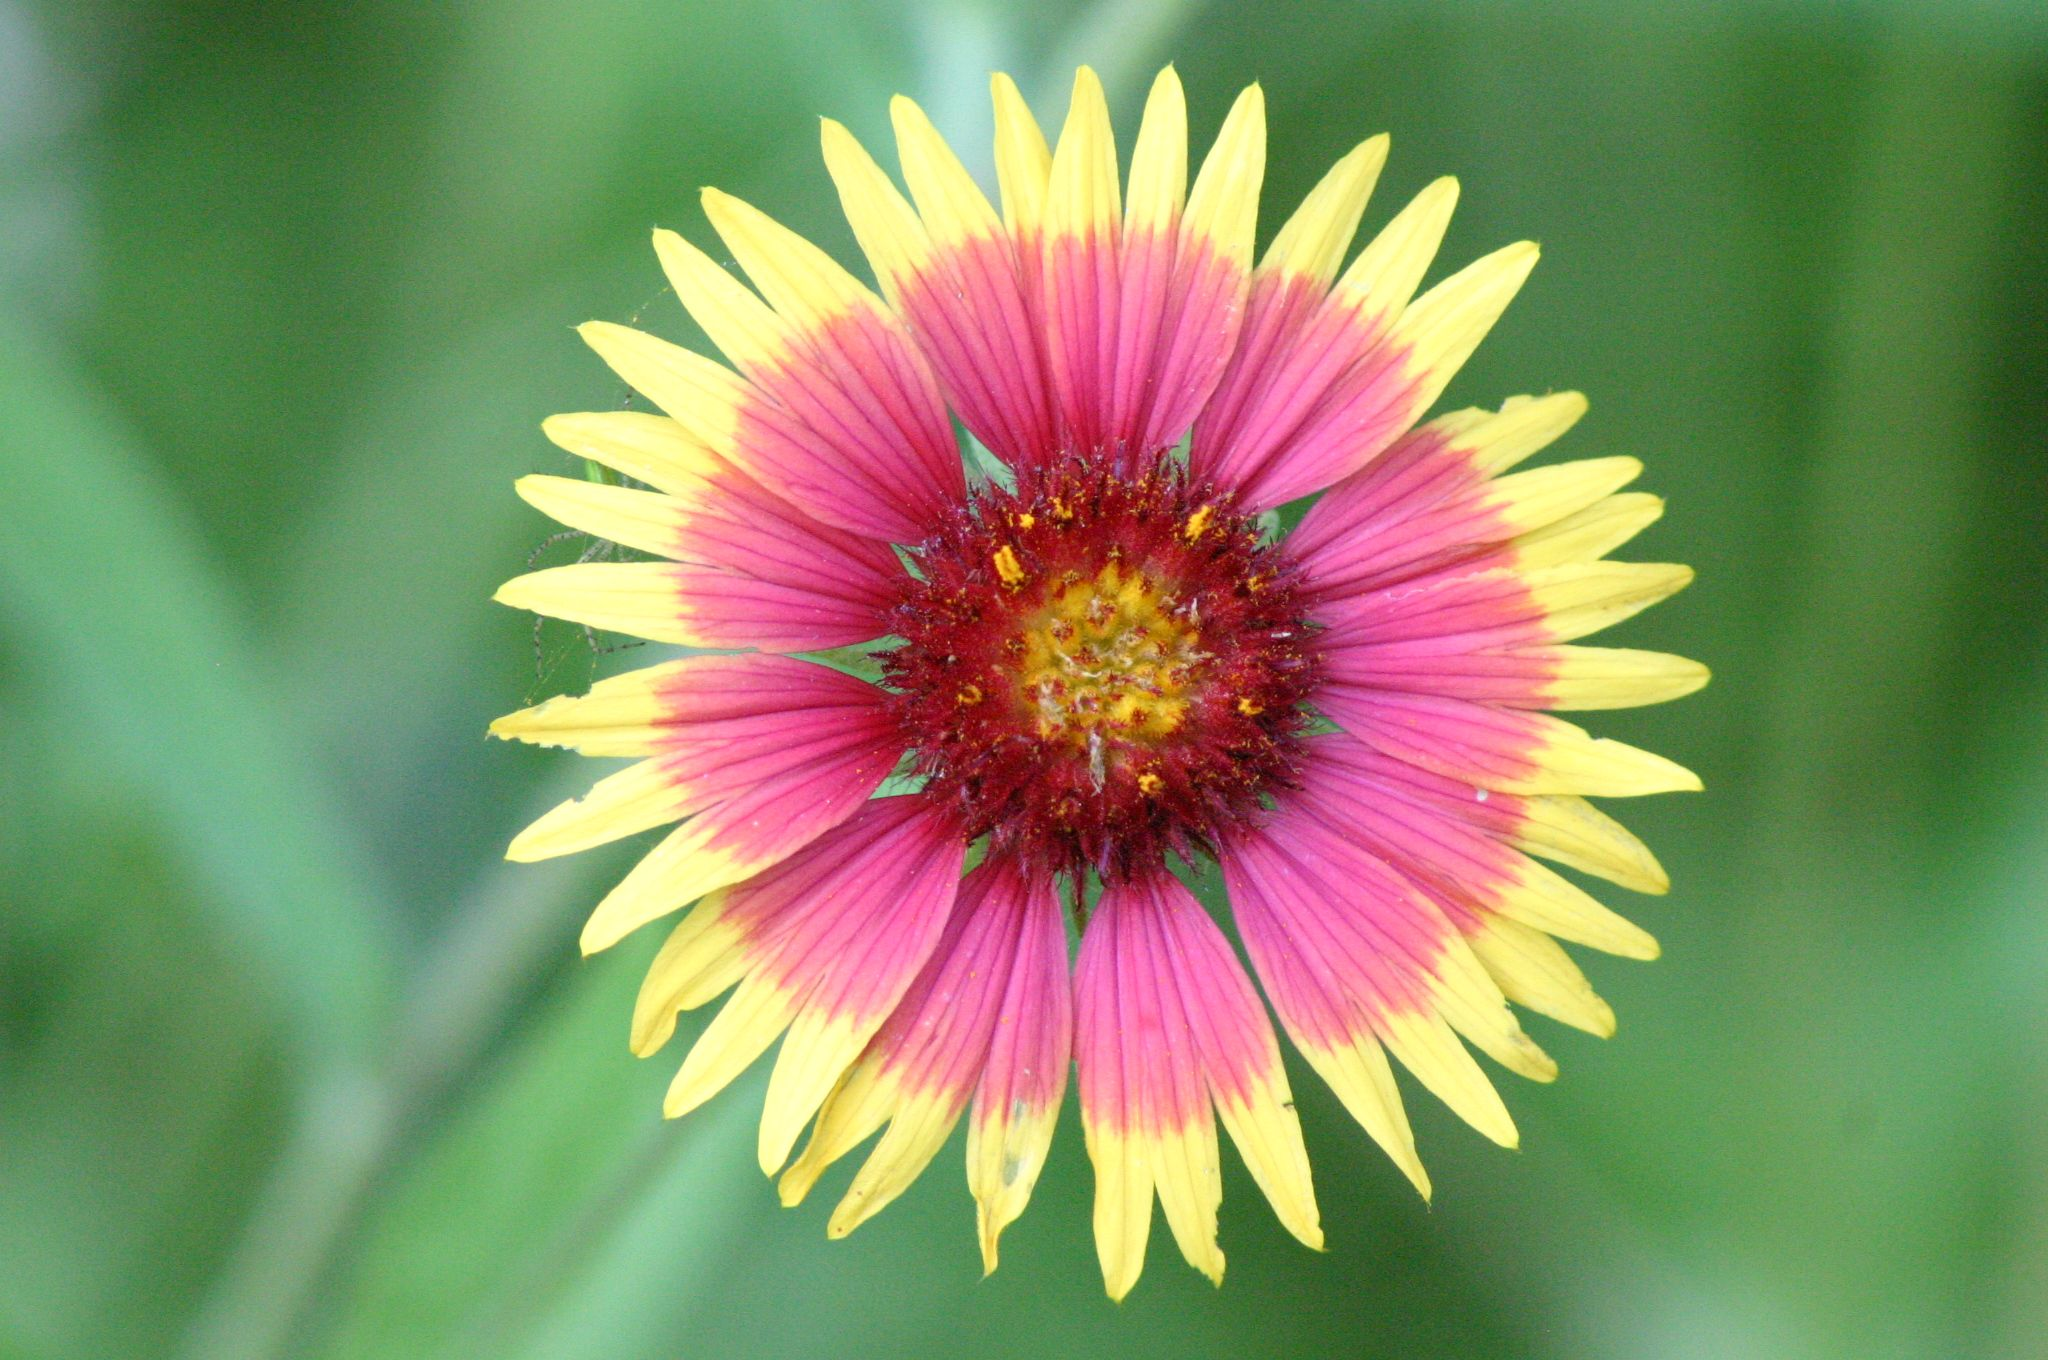 The Gaillardia pulchella is the state flower of Oklahoma    History     The Gaillardia pulchella is the state flower of Oklahoma